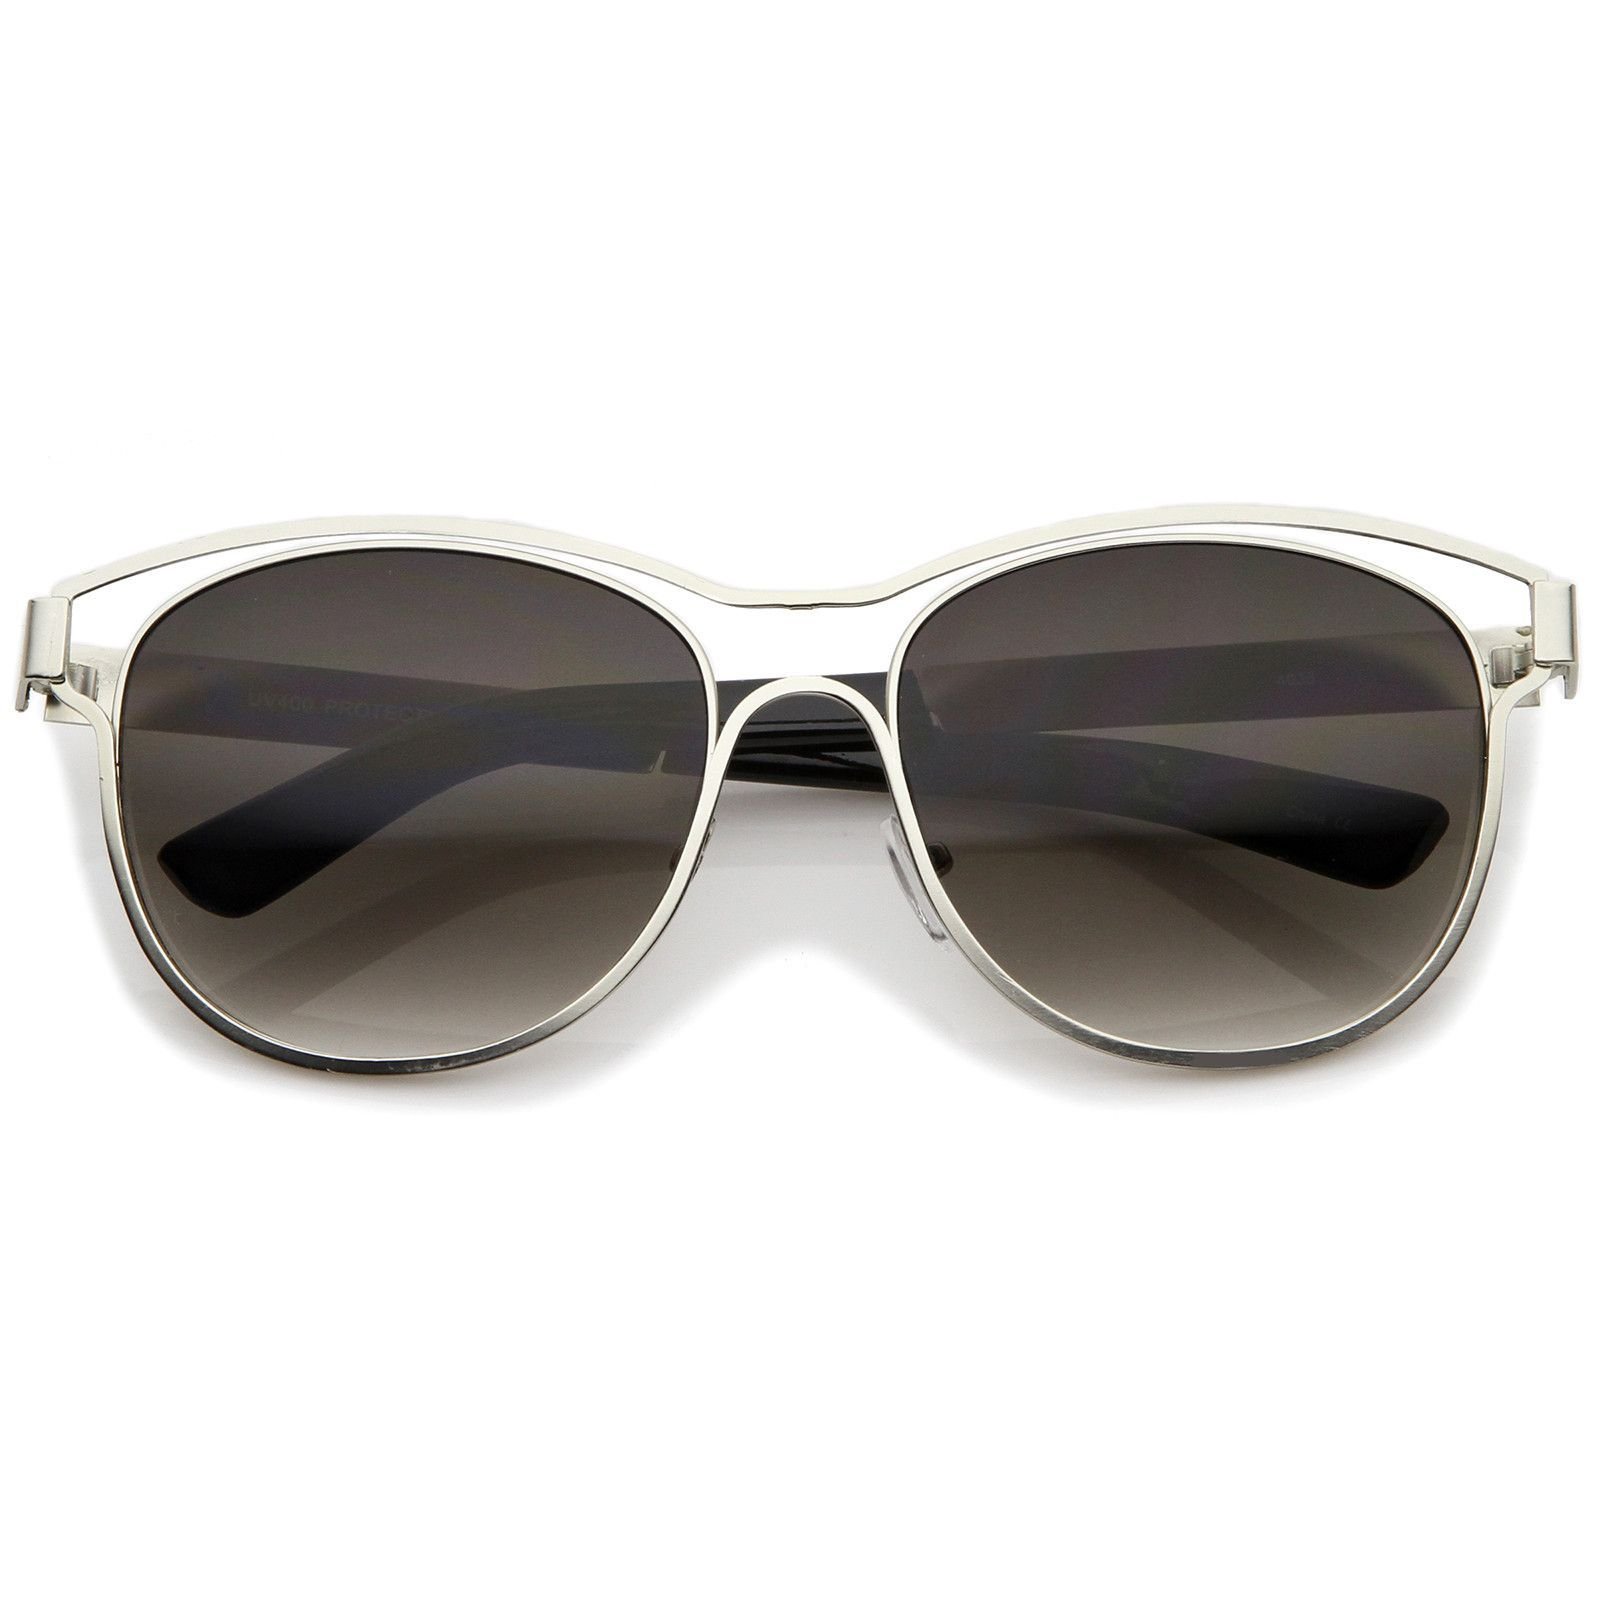 8aaddb8248e Modern Open Metal Brow Square Lens Horn Rimmed Sunglasses 57mm  frame   sunglasses  sunglass  mirrored  oversized  clear  purple  cateye  bold   womens